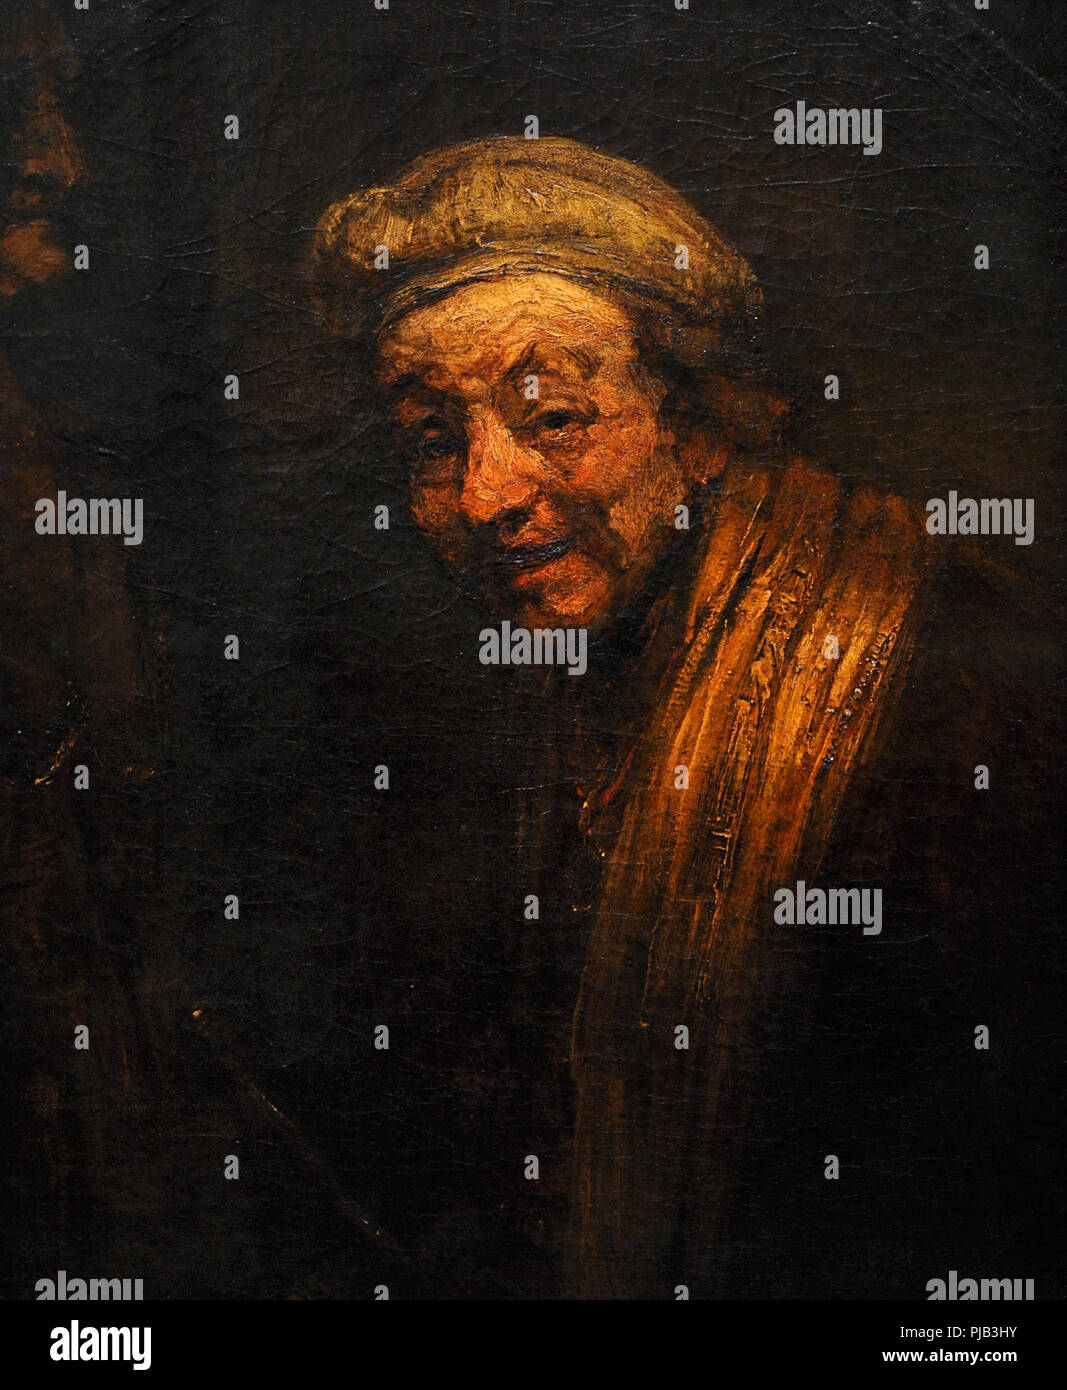 Rembrandt, Rembrandt Harmensz van Rijn, called (1606-1669). Dutch painter and printmaker. Self-portrait, 1632-1633. Wallraf-Richartz Museum. Cologne. Germany. - Stock Image